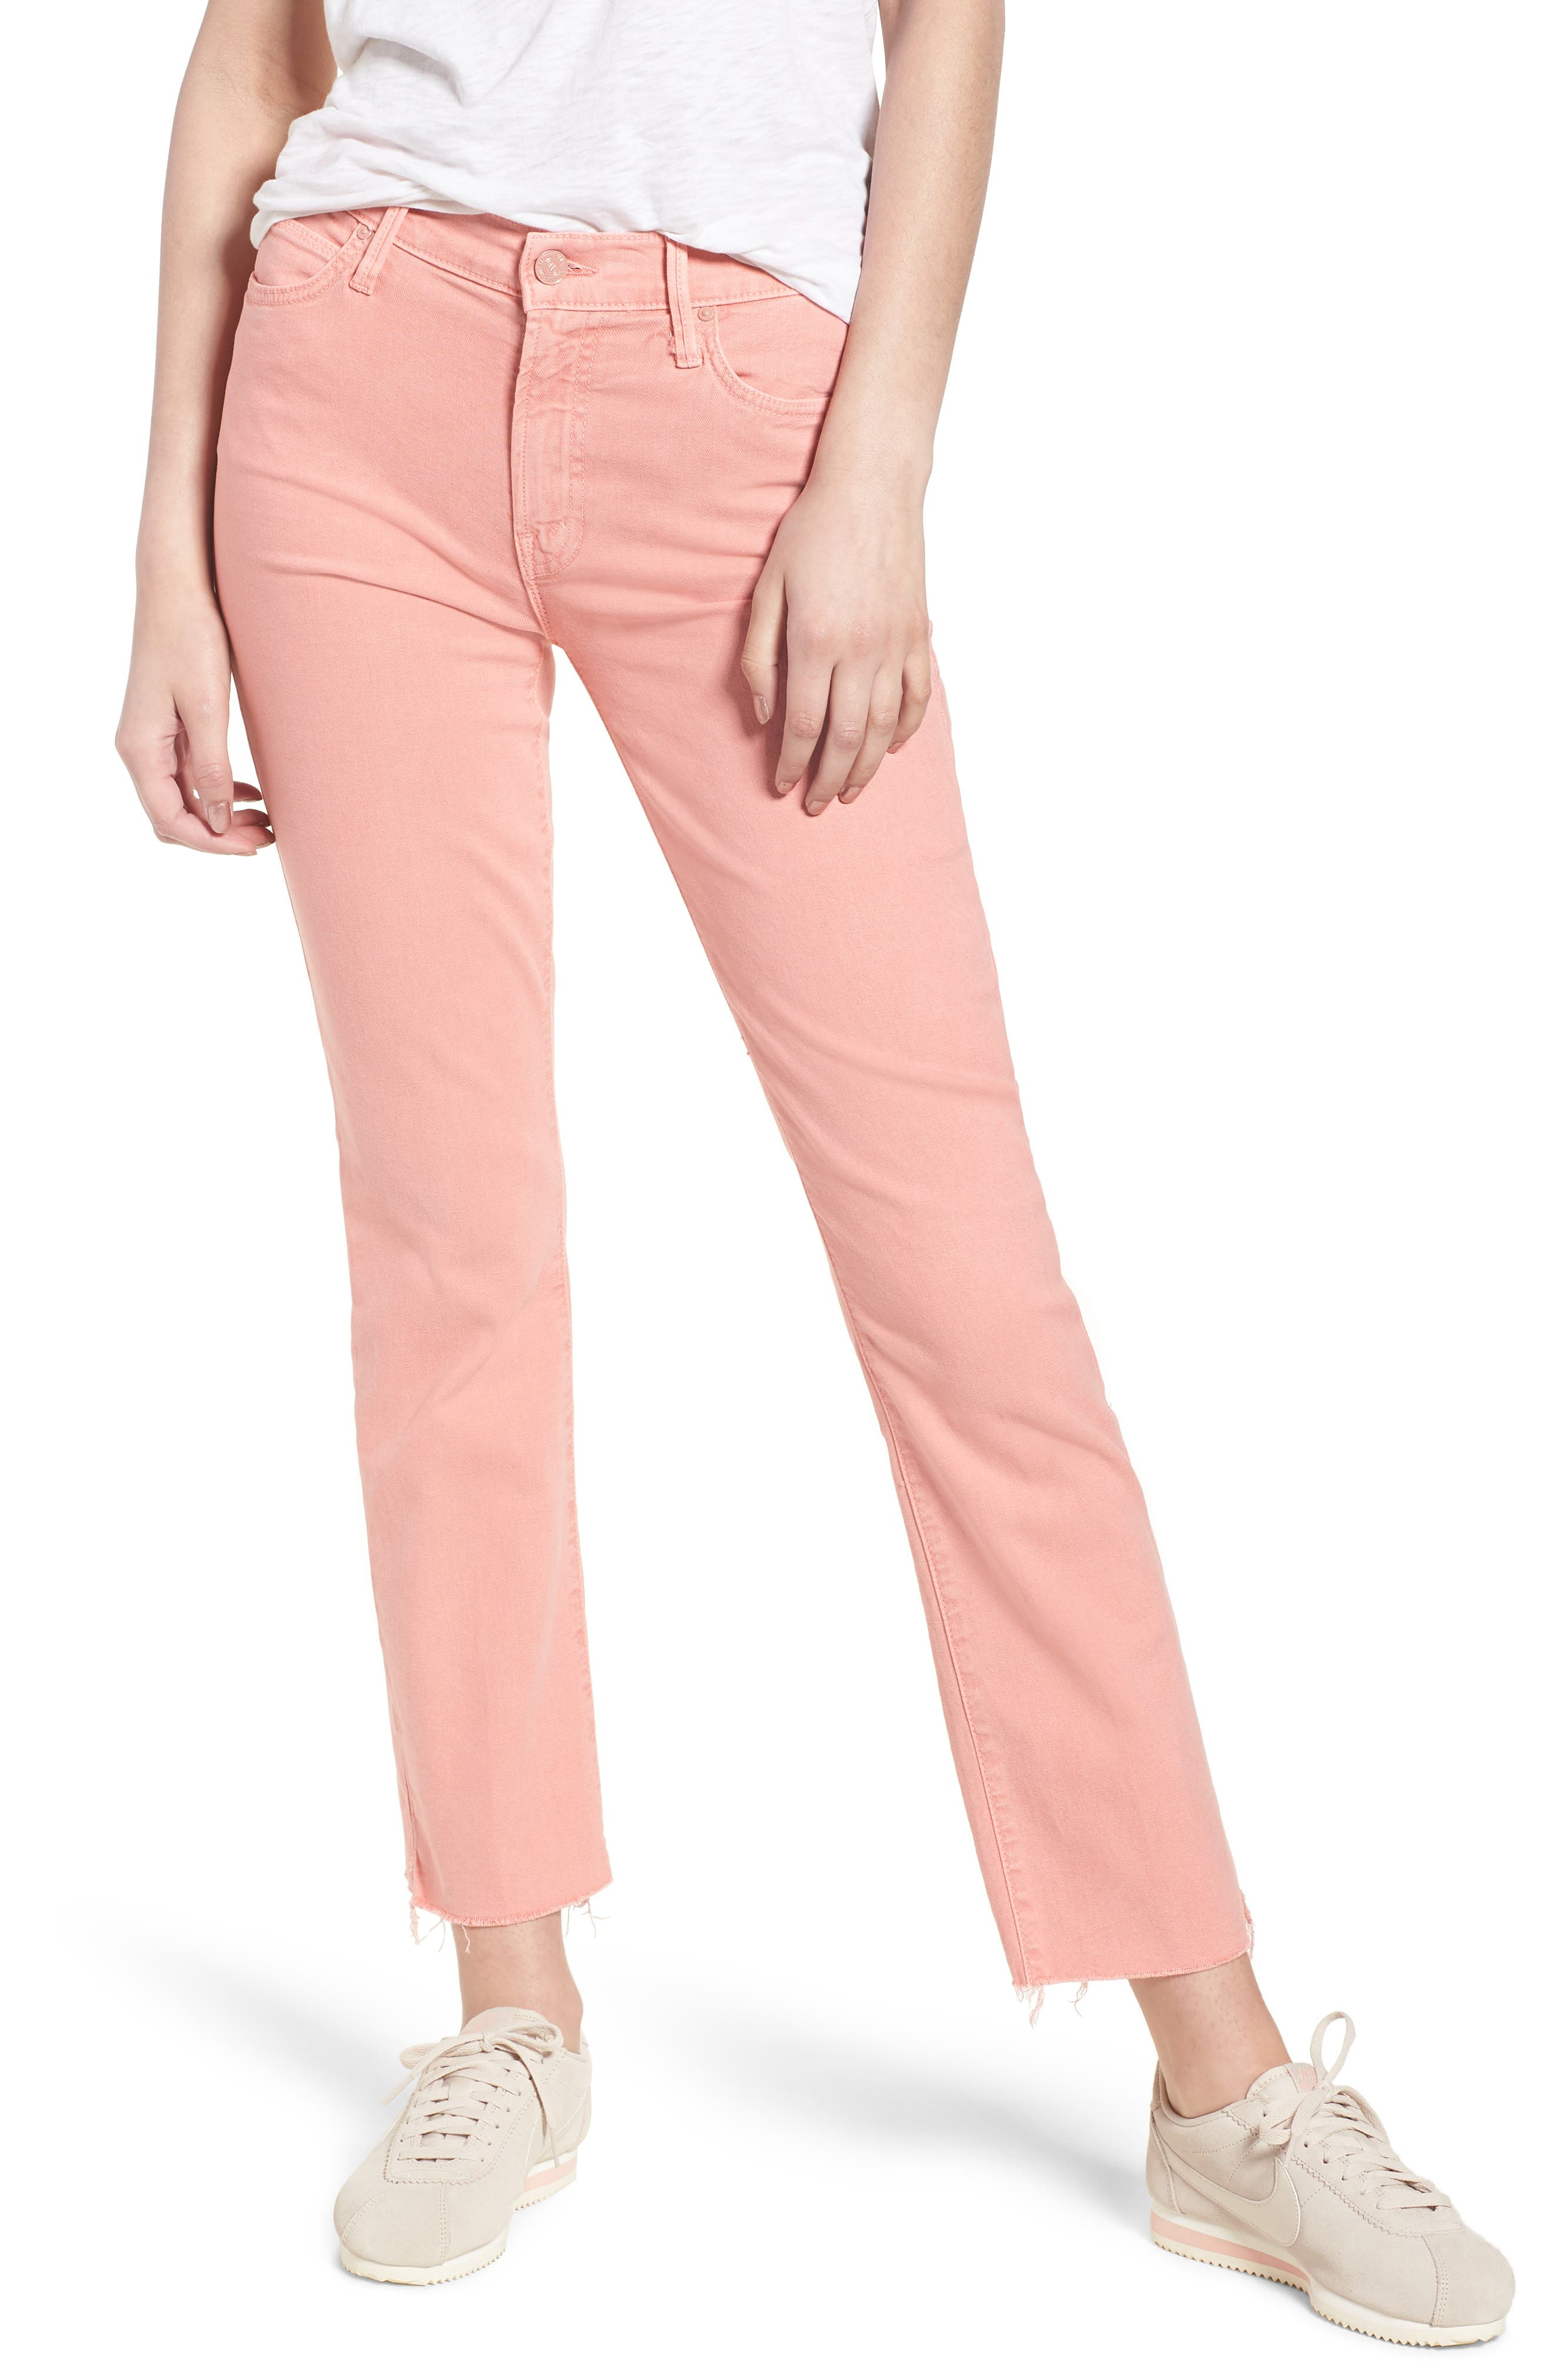 The Rascal Ankle Snippet Jeans,                         Main,                         color, 690